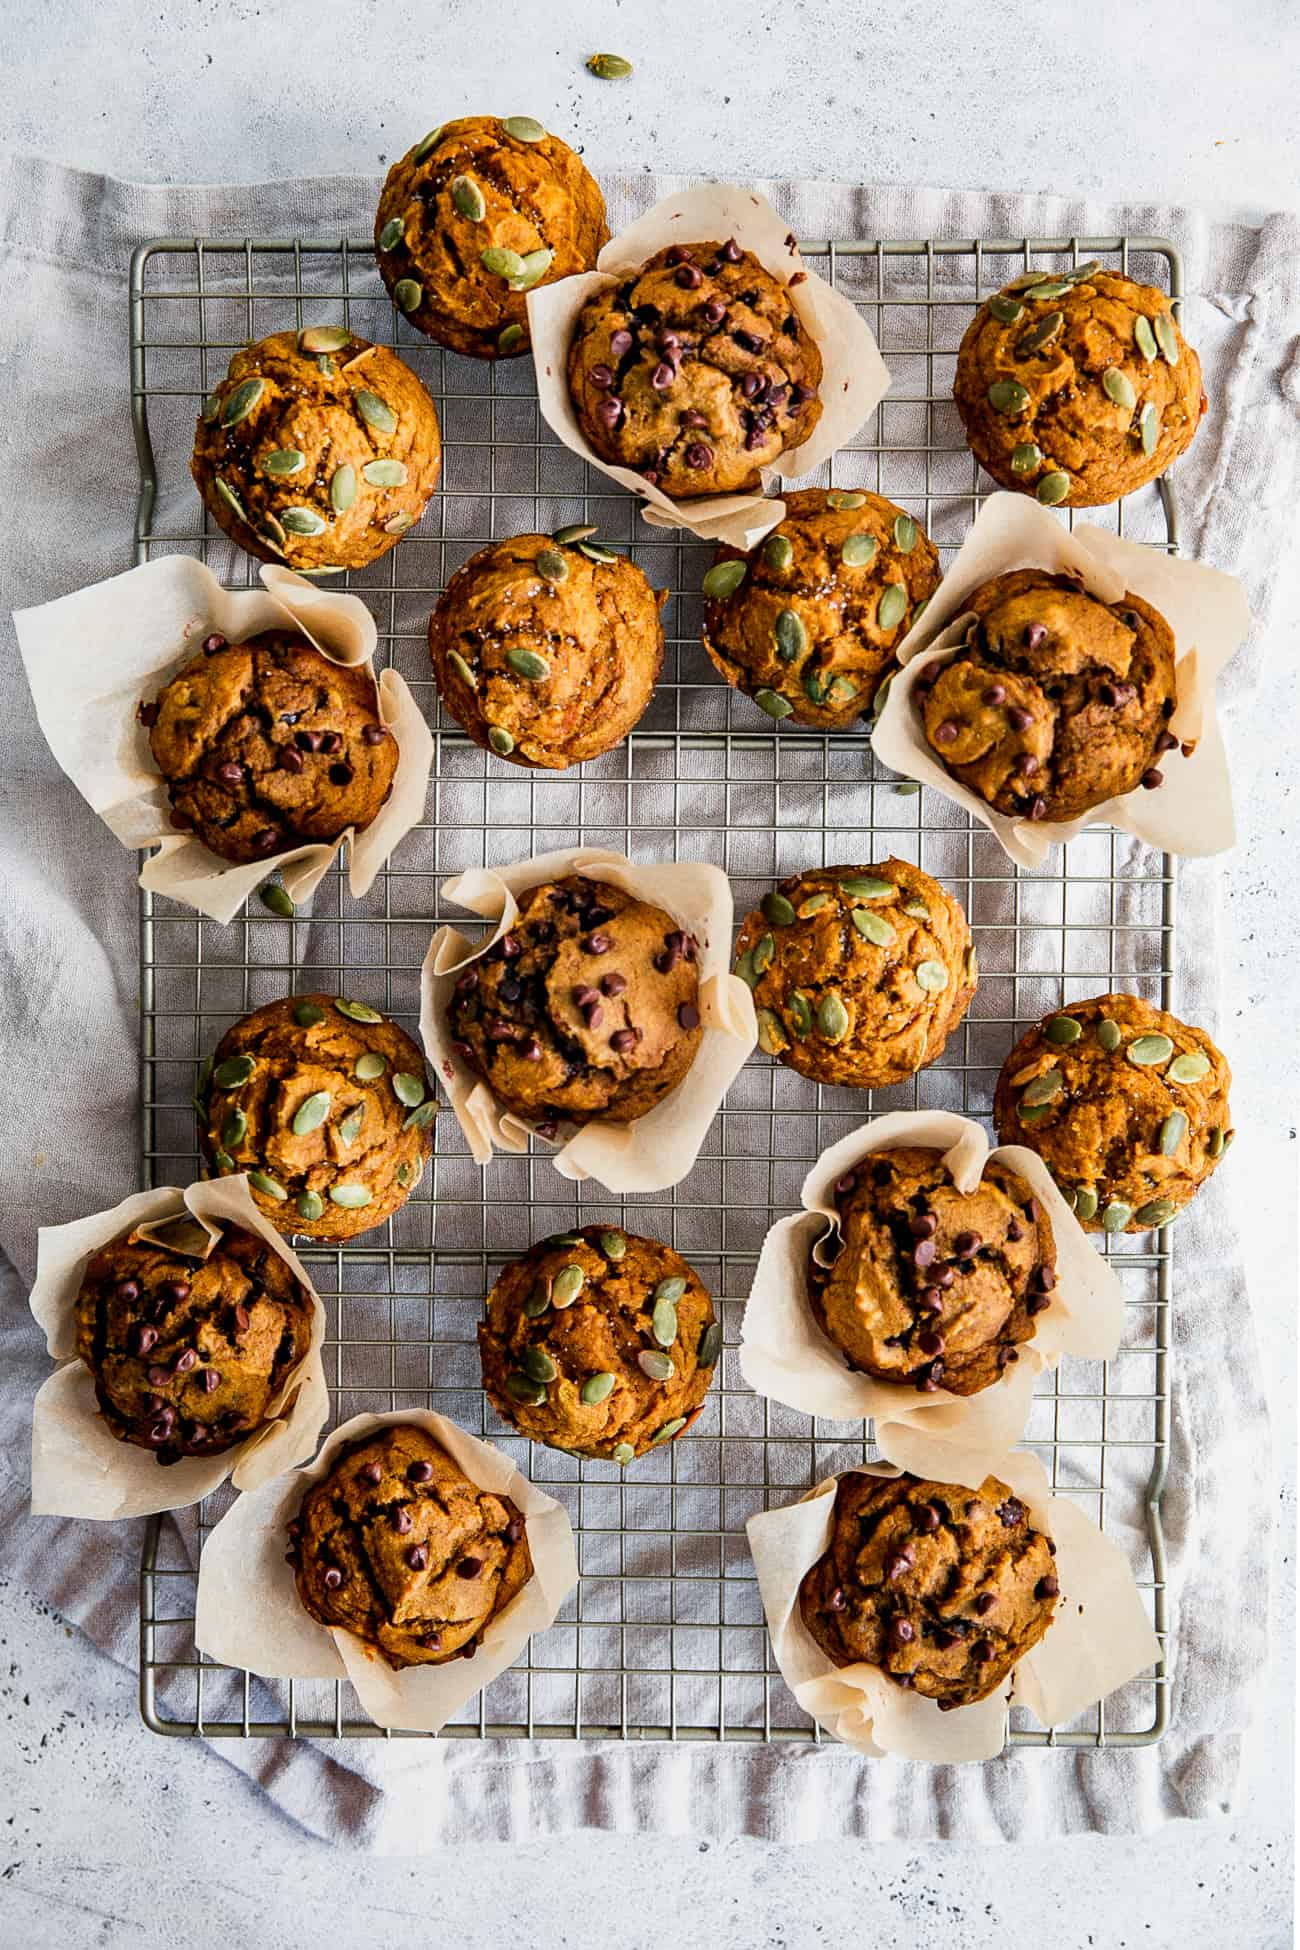 pumpkin muffins on wire rack, topped with pumpkin seeds and chocolate chips